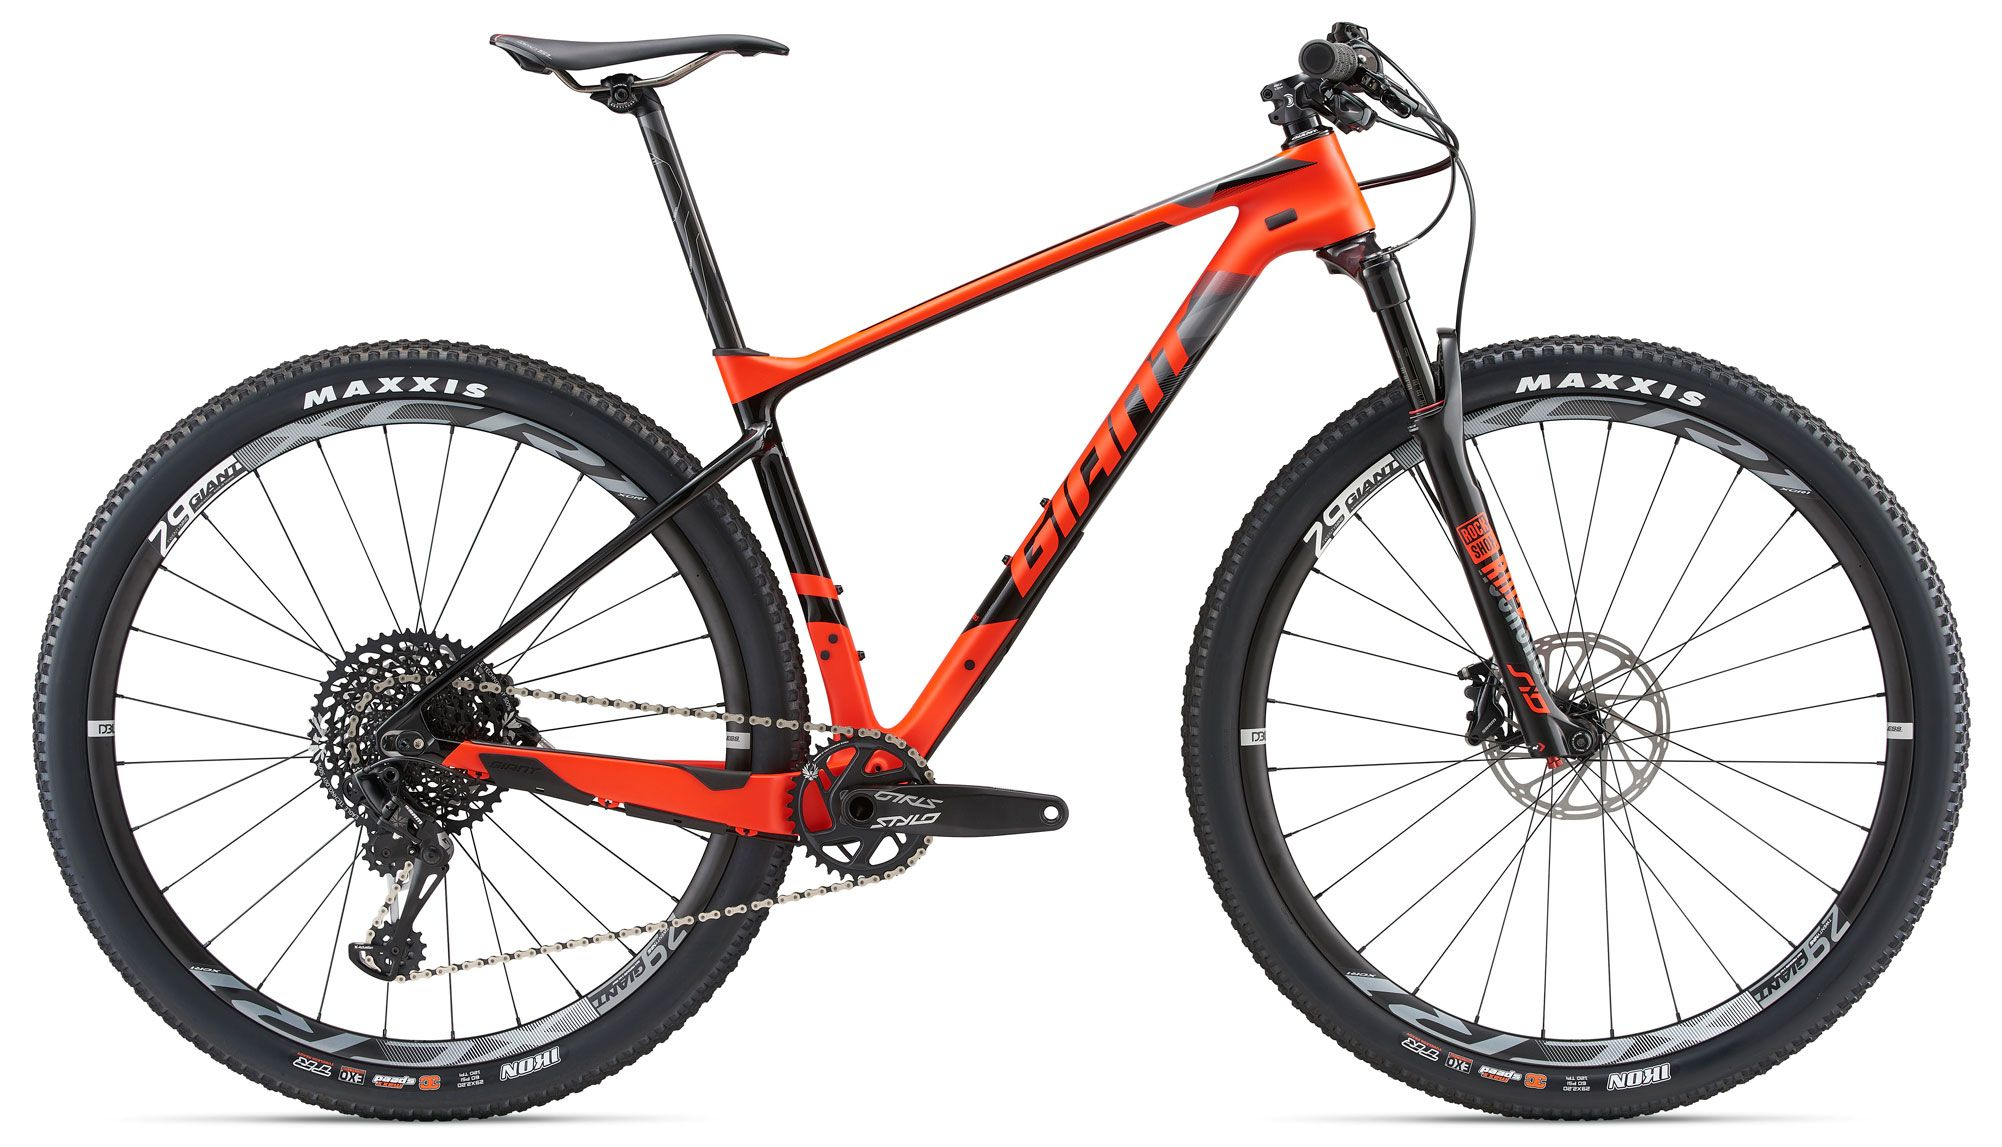 Велосипед Giant XTC Advanced 29er 1 2018 велосипед giant defy advanced pro 0 compact 2015